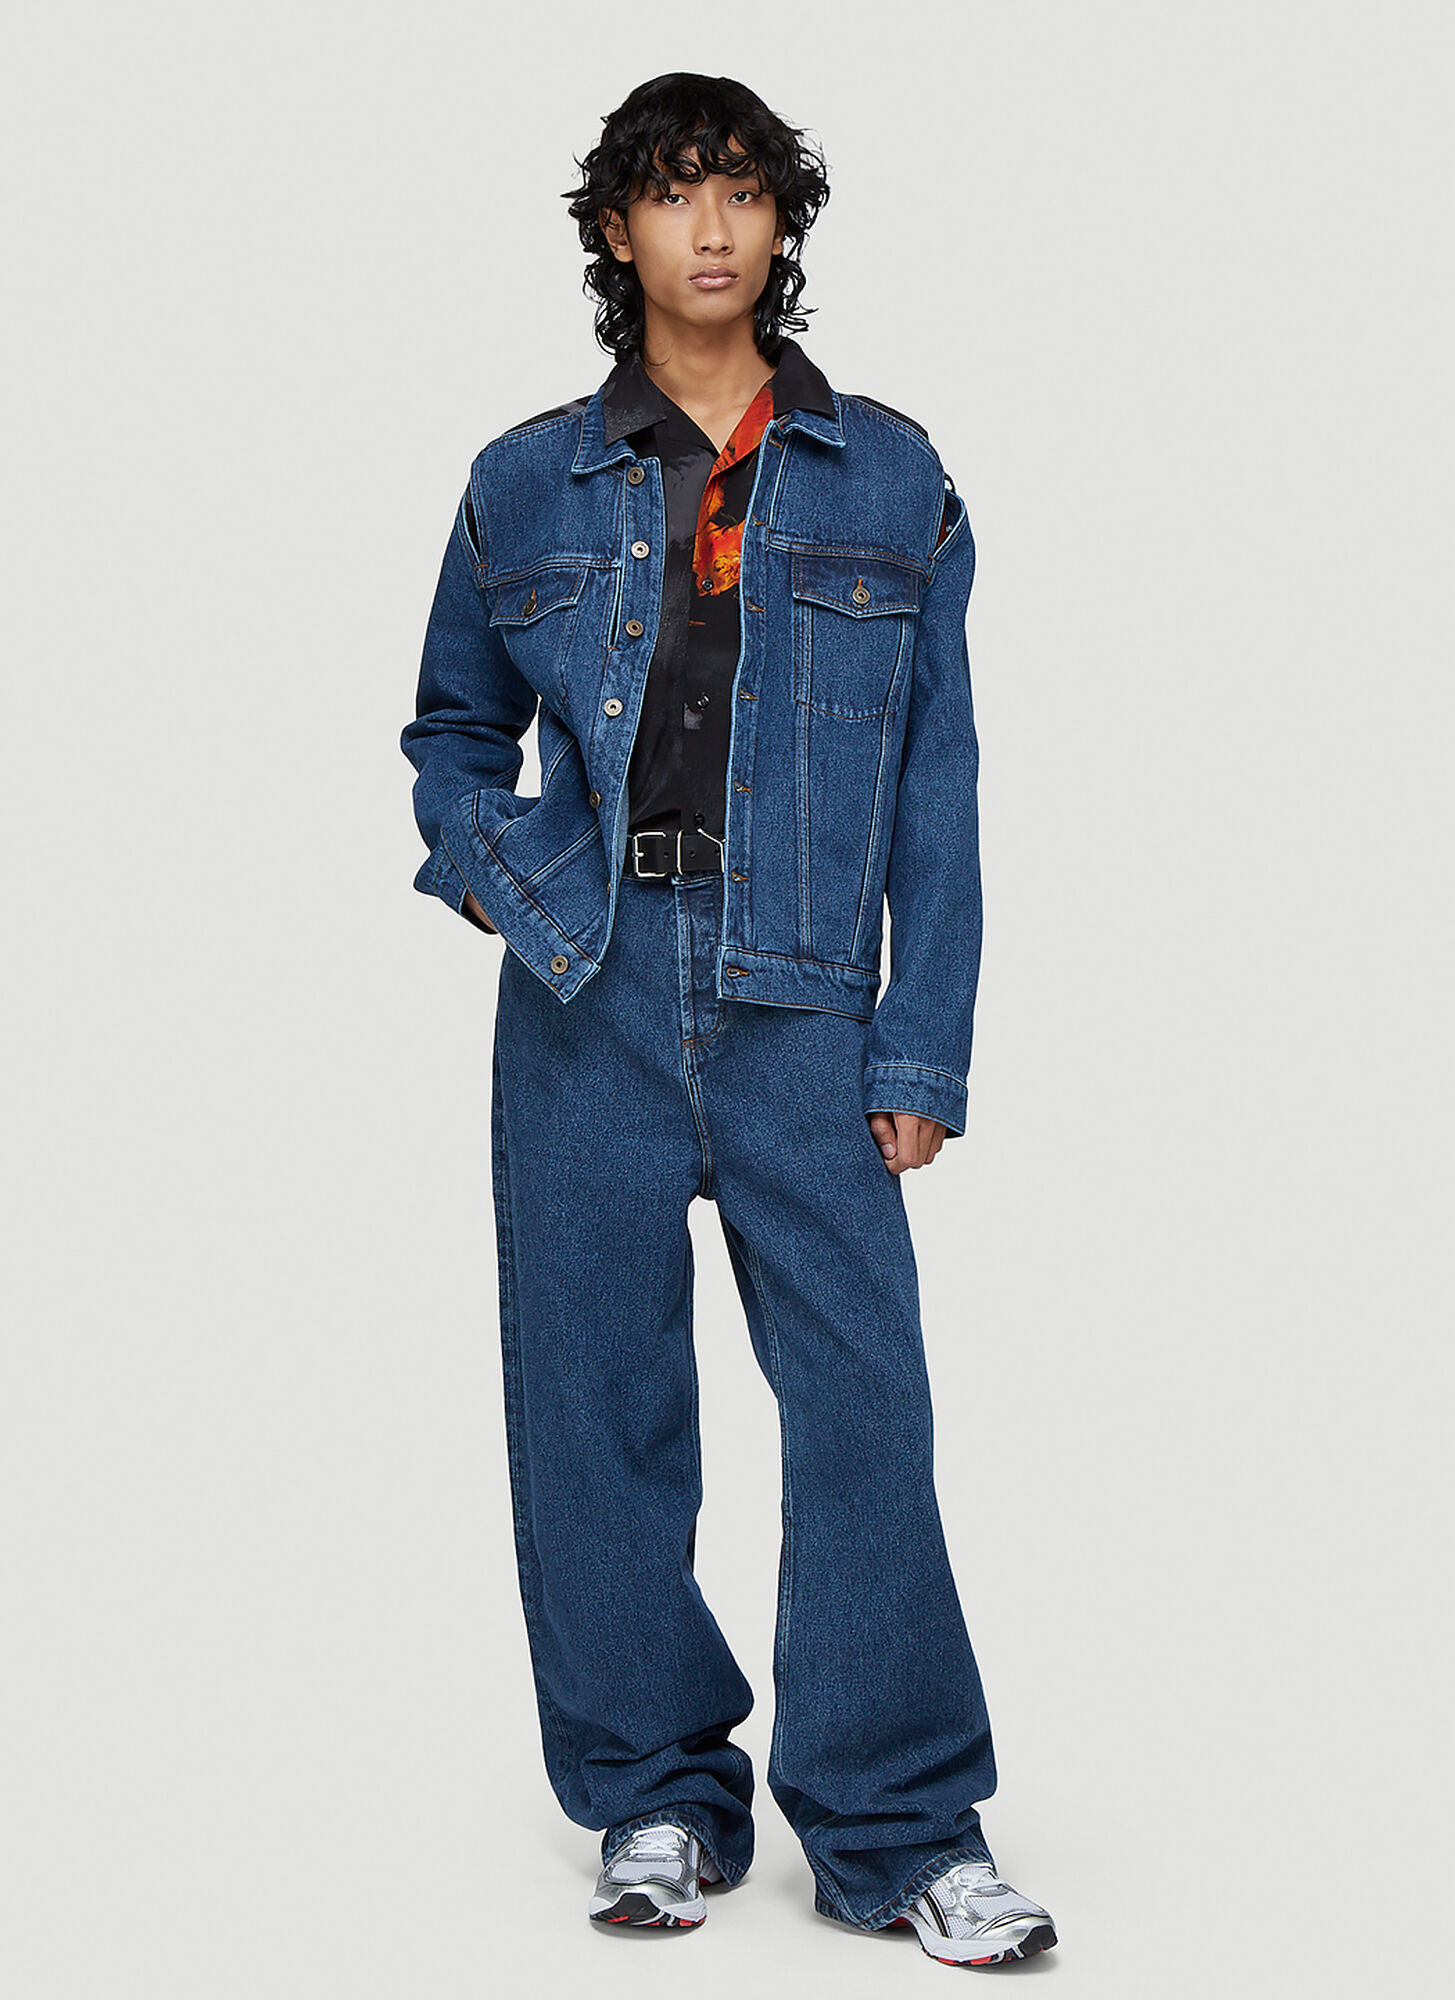 Y/Project Classic Peep Show Jeans